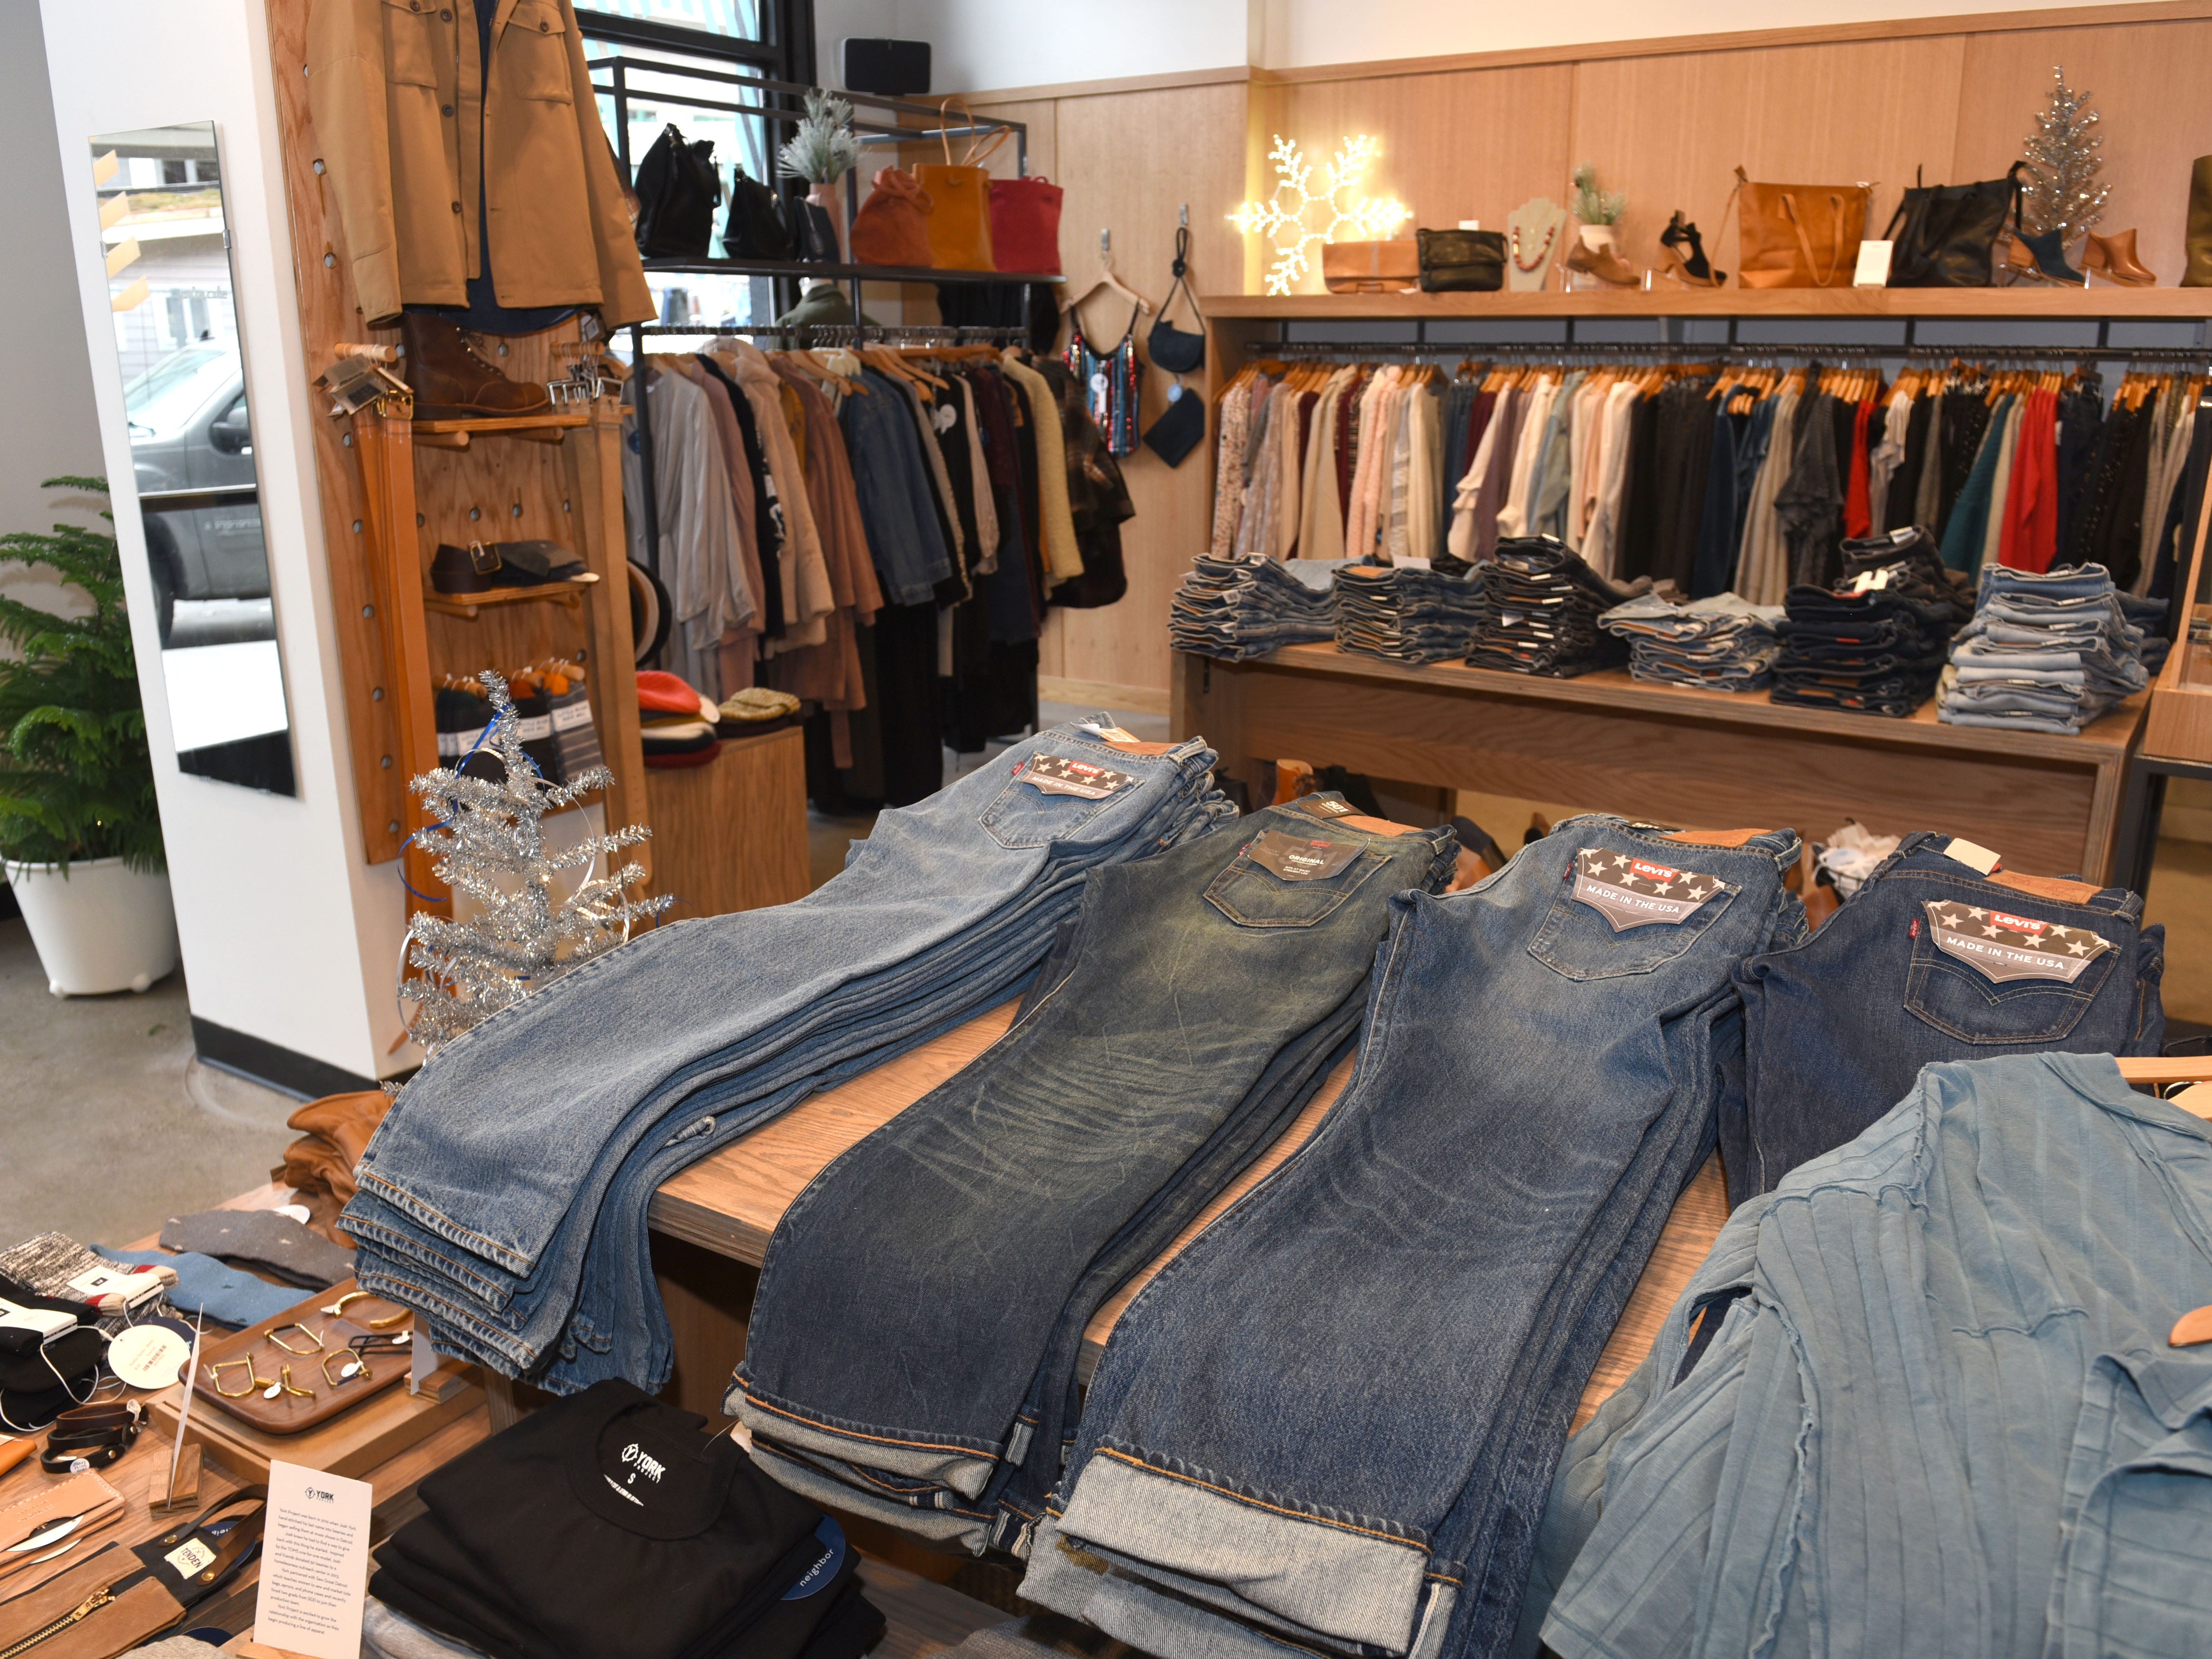 The Good Neighbor is a men's and women's clothing and accessories store inside the Shinola Hotel.